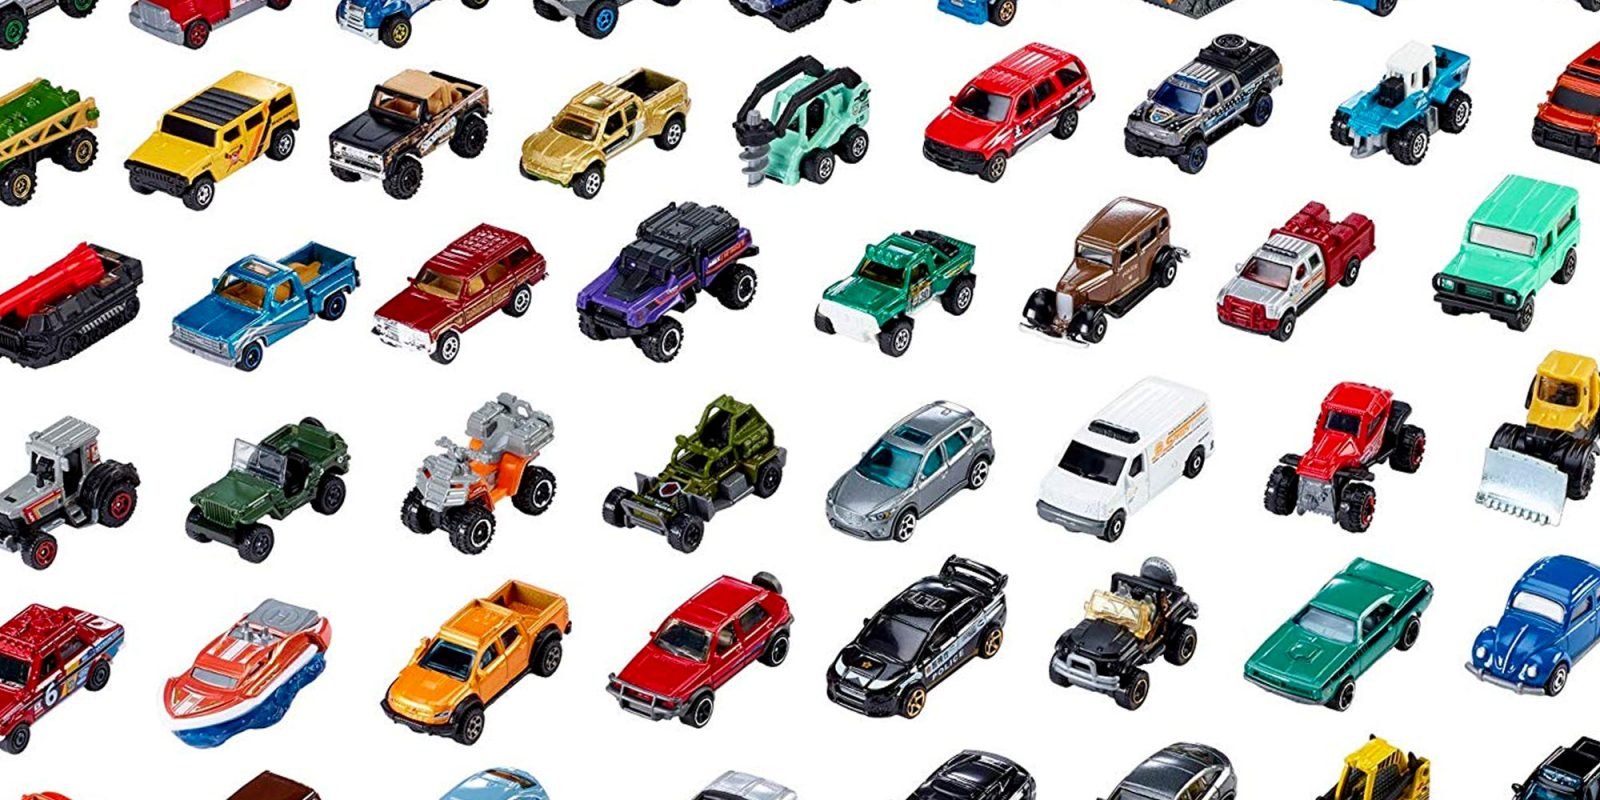 Expand your vehicle collection with 50 Matchbox cars for $0.60 a piece